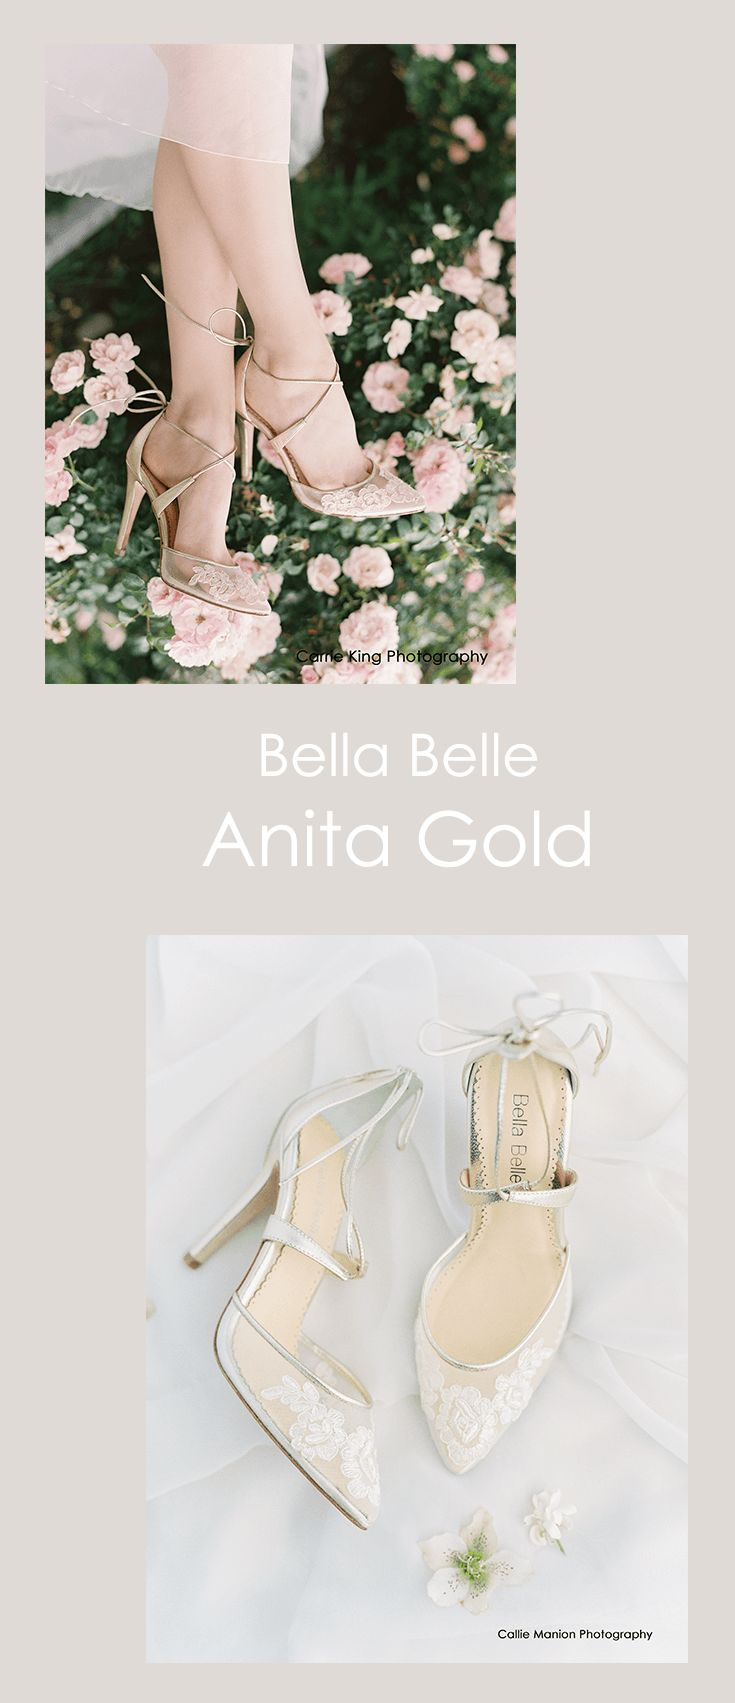 The Bella Belle Anita Gold wedding shoe is according to our real brides, better than Jimmy Choo and Badgley Mischka. The classic, timeless and elegant wedding heel is comfortable, gold, has white floral lace, and ballerina ankle strap tie for the perfect wedding shoe accessory for a night of dancing!   Photography by Carrie King and Callie Manion #jimmychoowedding